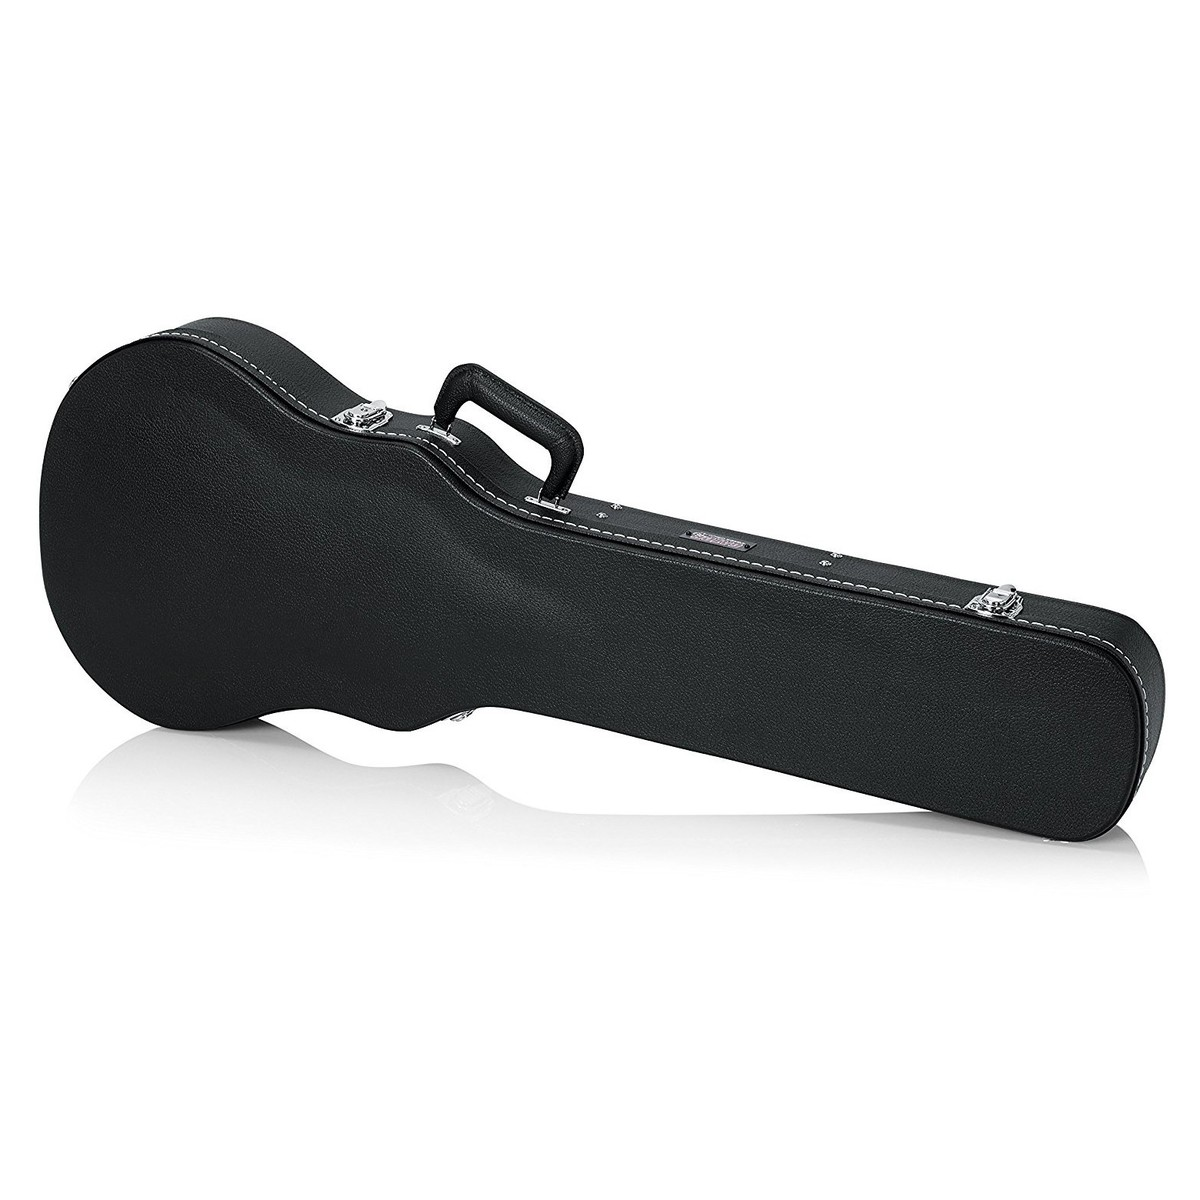 Click to view product details and reviews for Gator Gw Lps Deluxe Guitar Case 43 X 15 X 5.